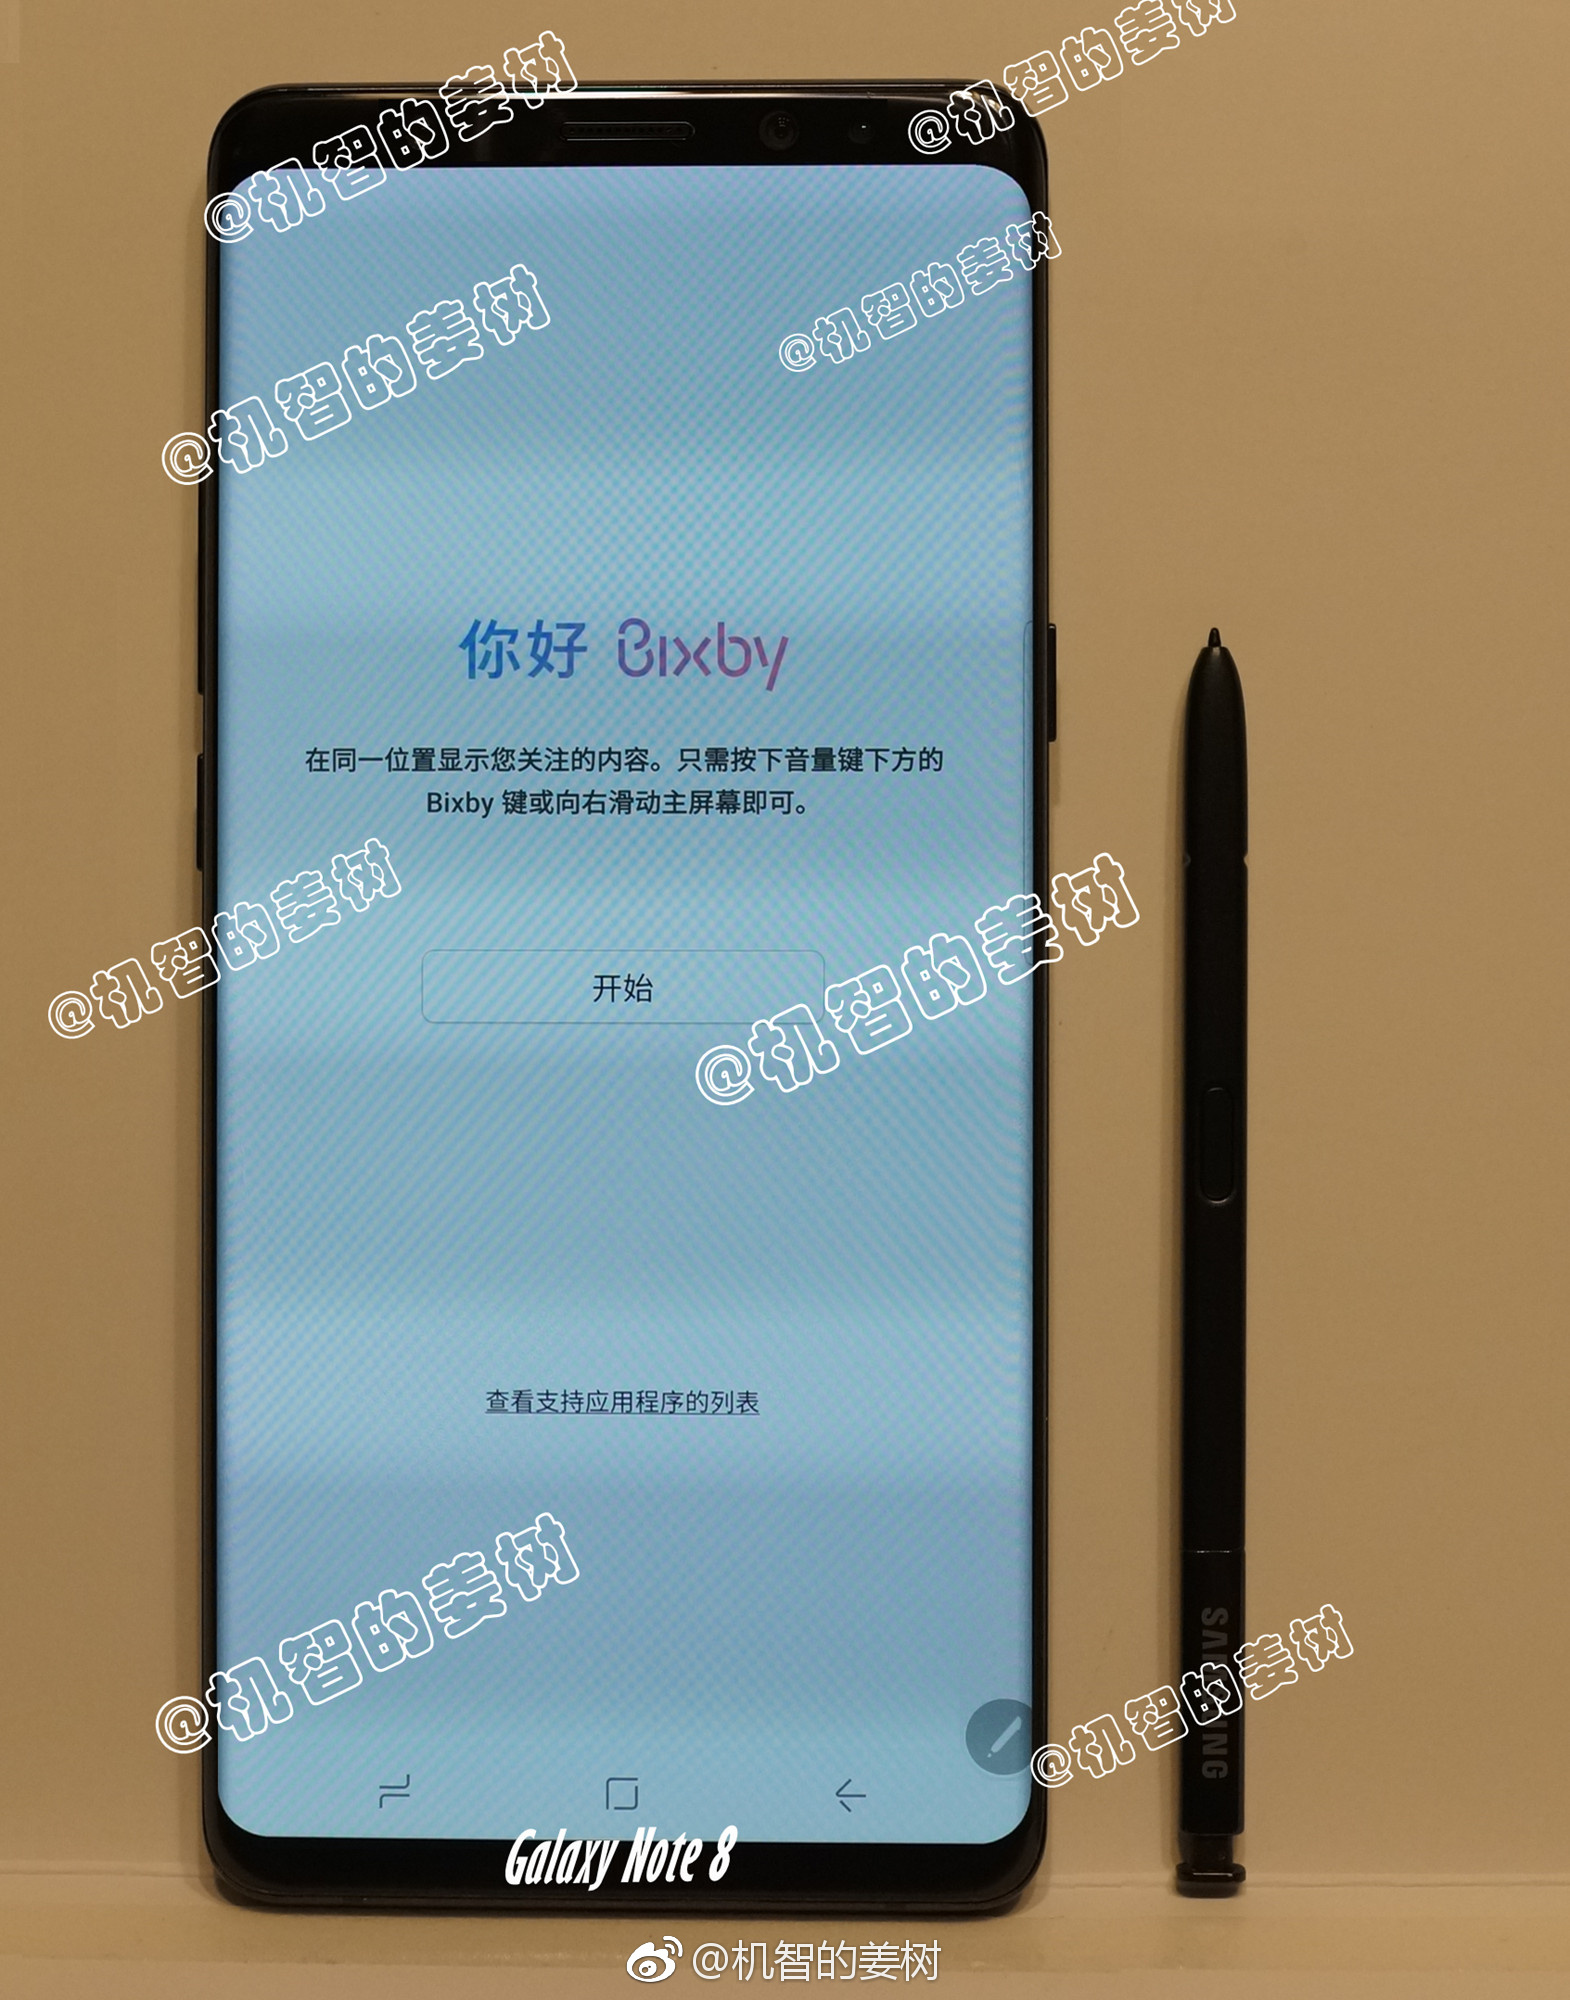 Brace yourselves – Galaxy Note 8 leaks like this one to commence